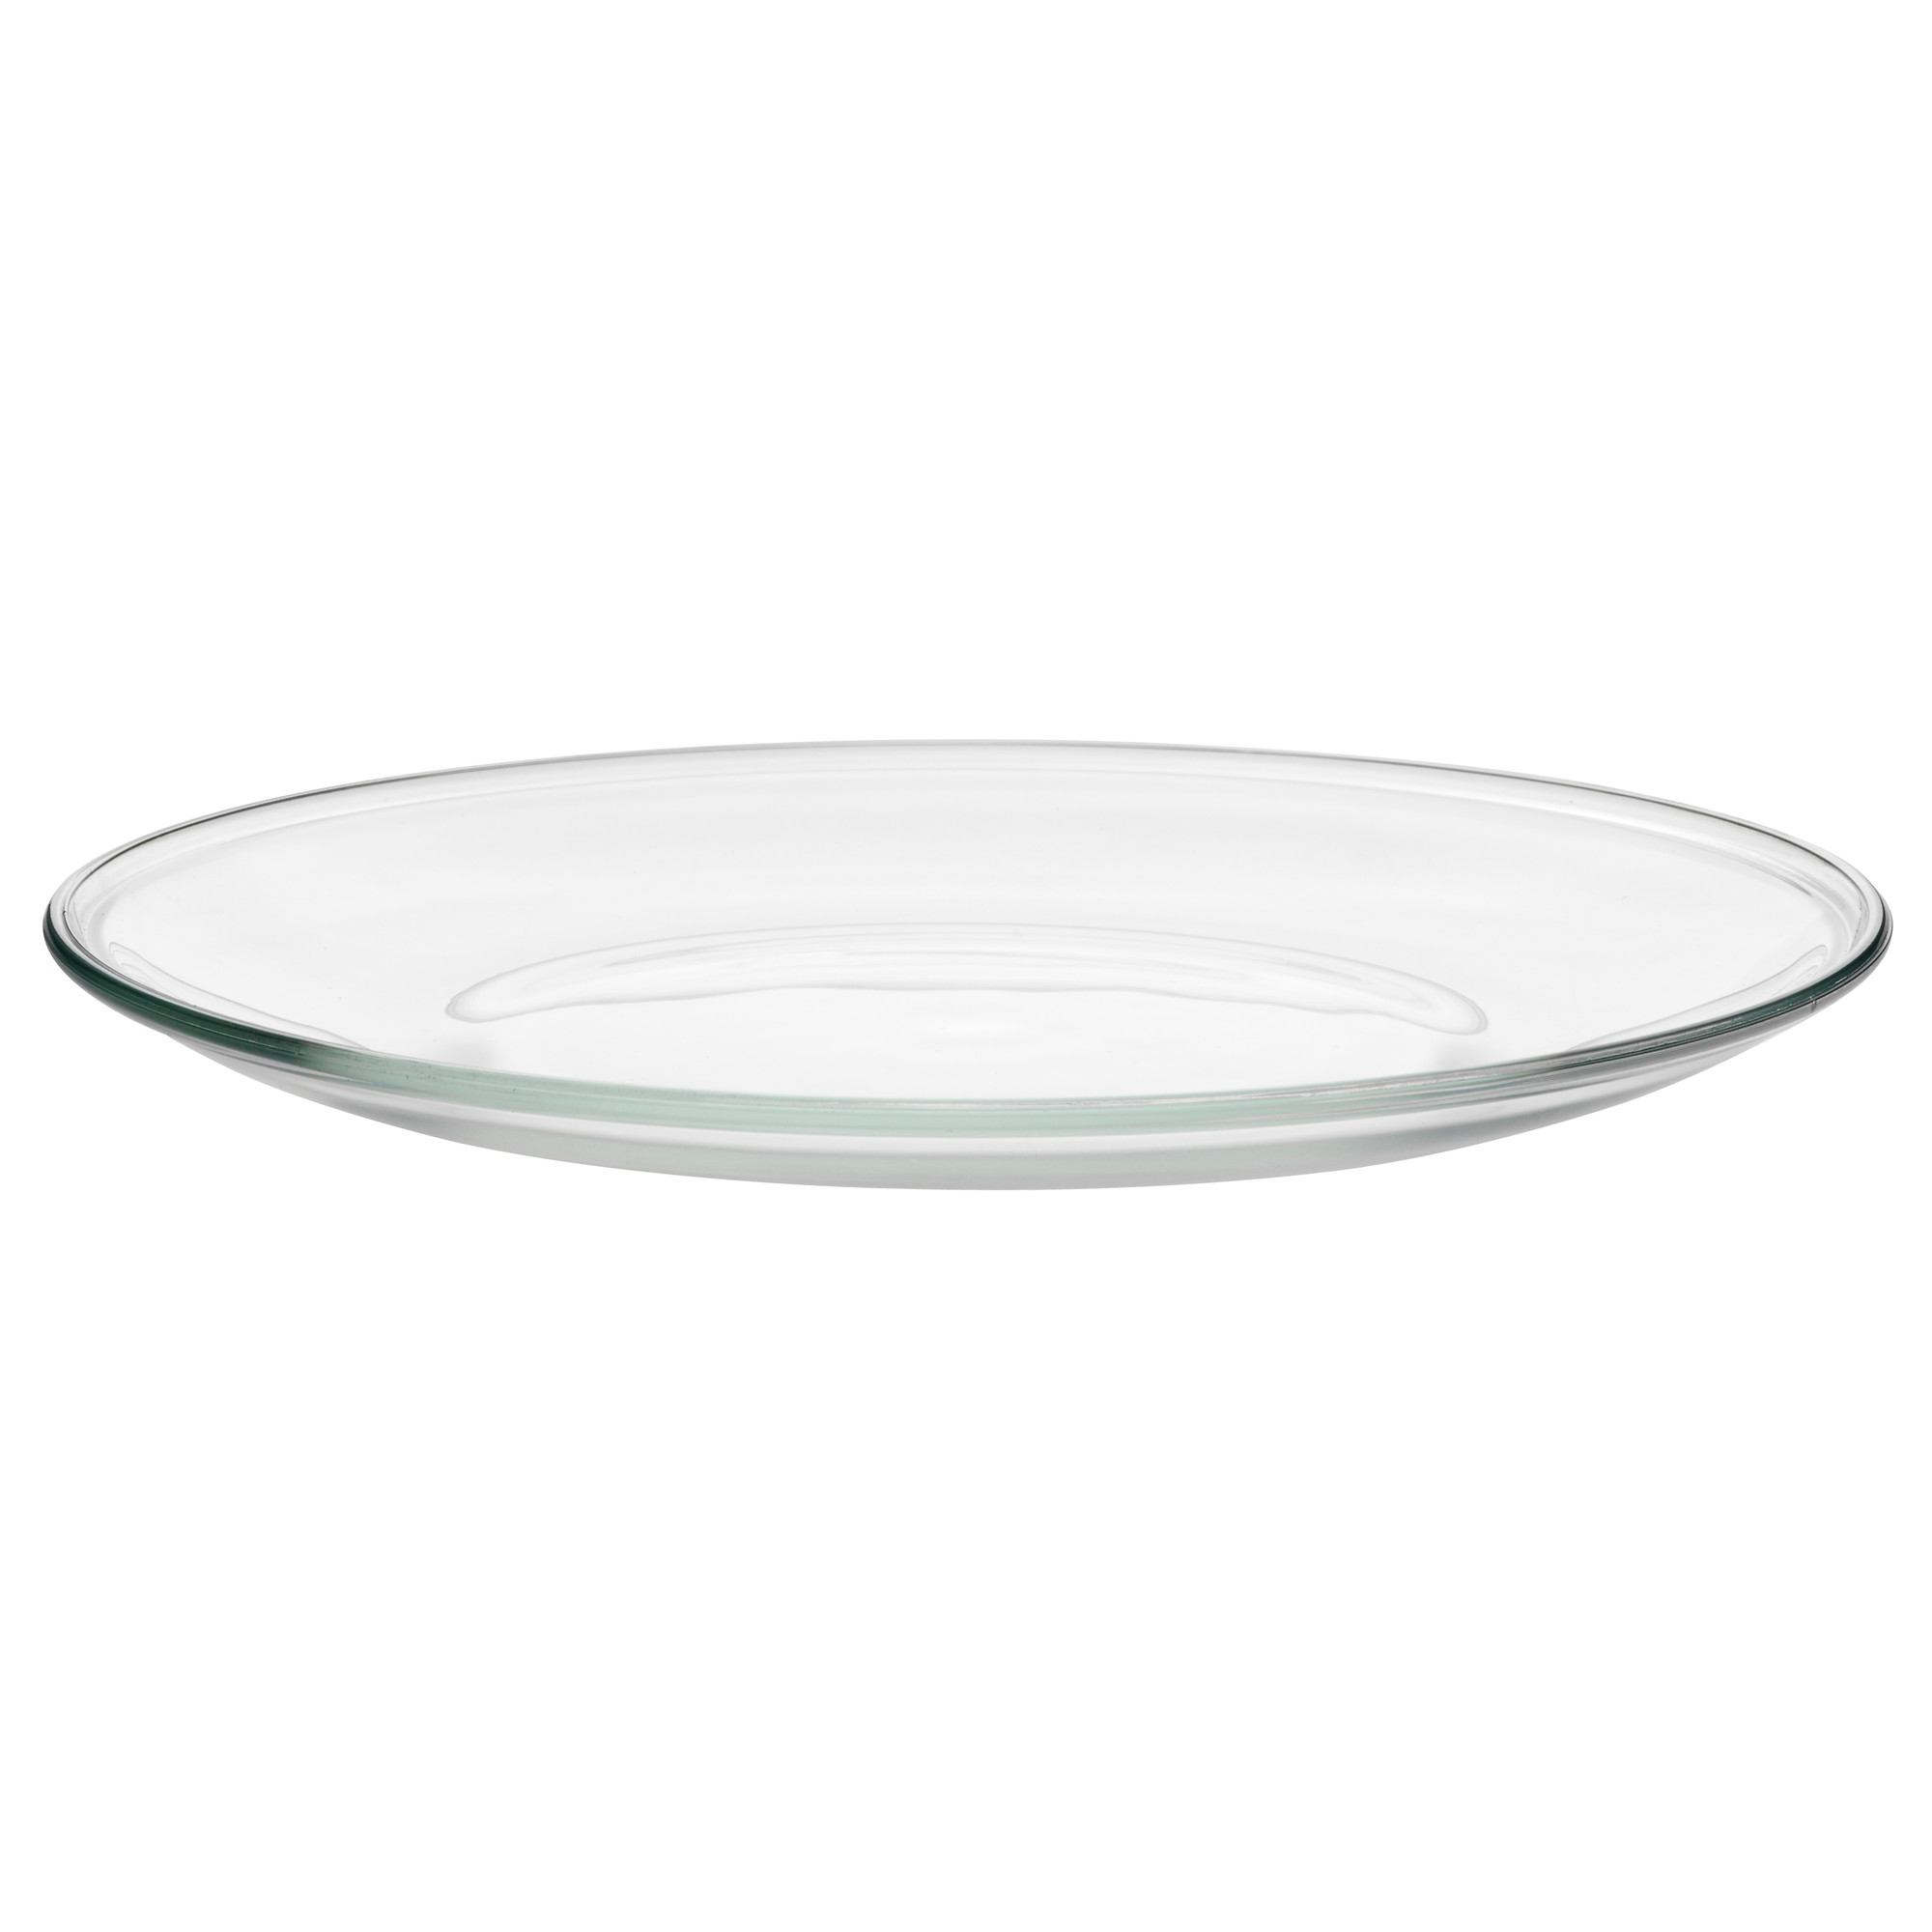 Appealing Clear Glass Dinner Plates Contemporary Best Image  sc 1 st  Glass Designs & Glass Dinner Sets Uk - Glass Designs